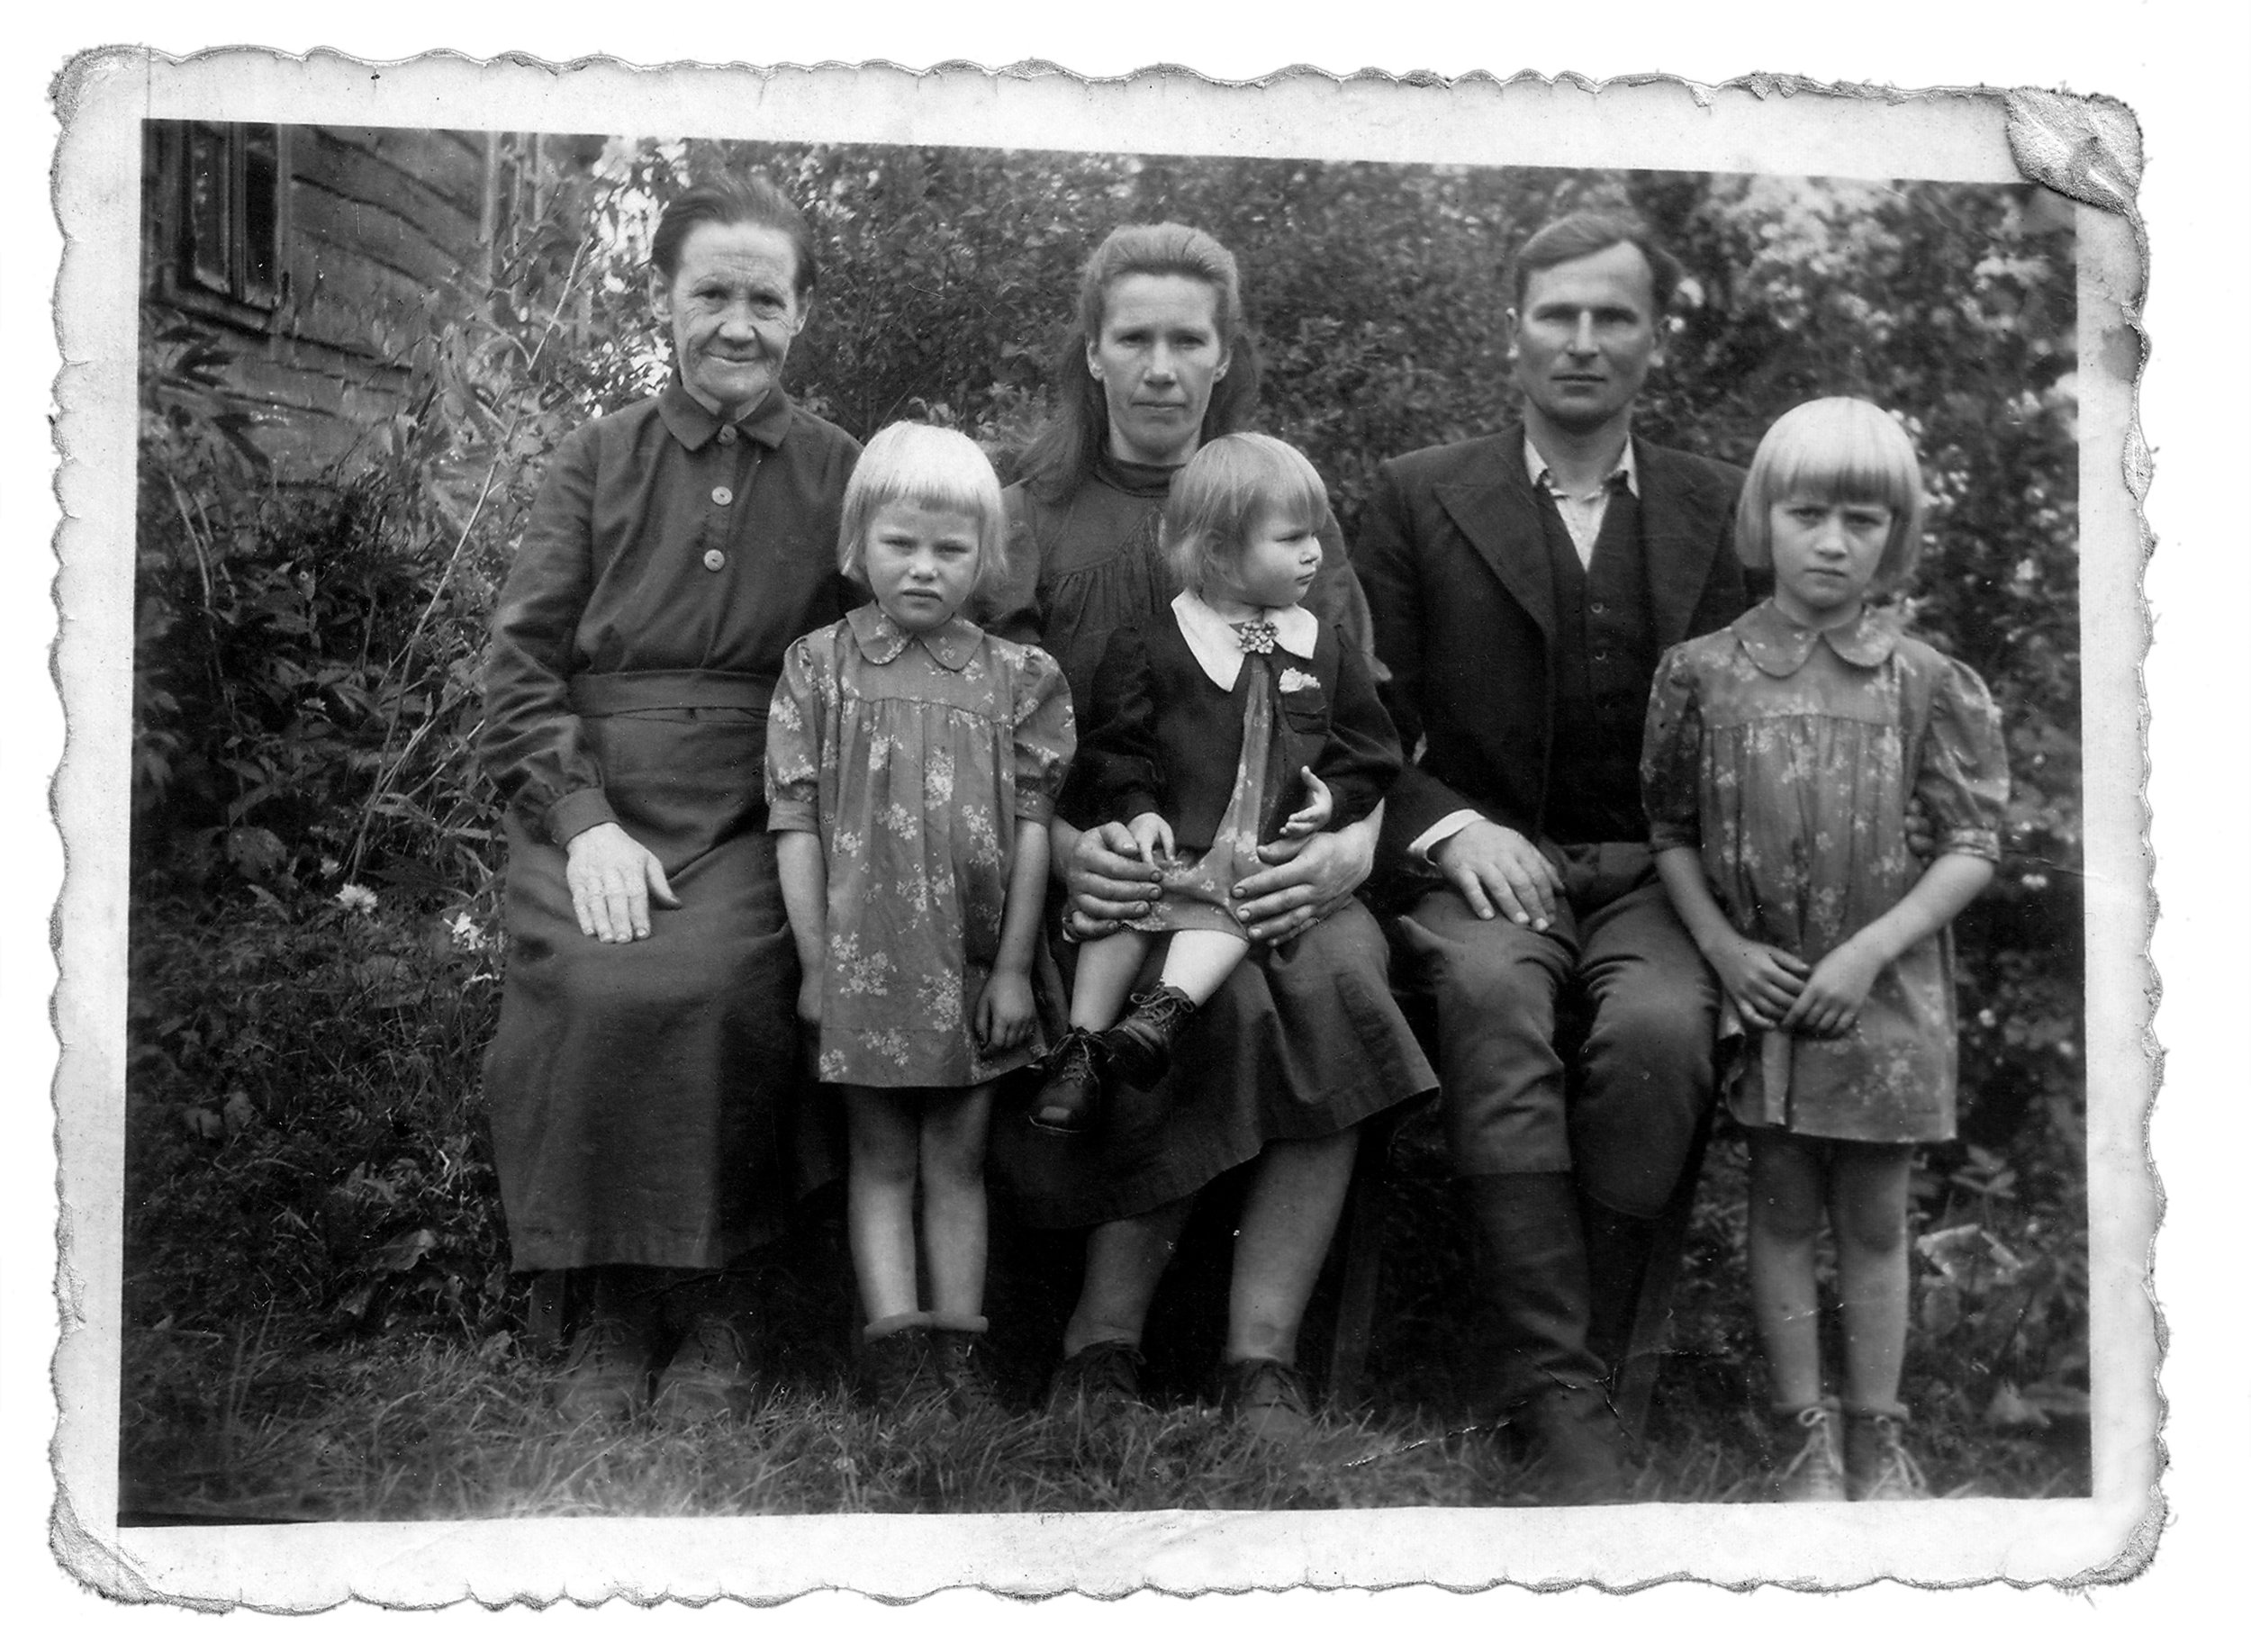 Rozalija Kairienė, far left, great great grandmother of Egidijus Gaidauskas. She was orphaned at age 6 and although Catholic, she was cared for by a Jewish family for several years.